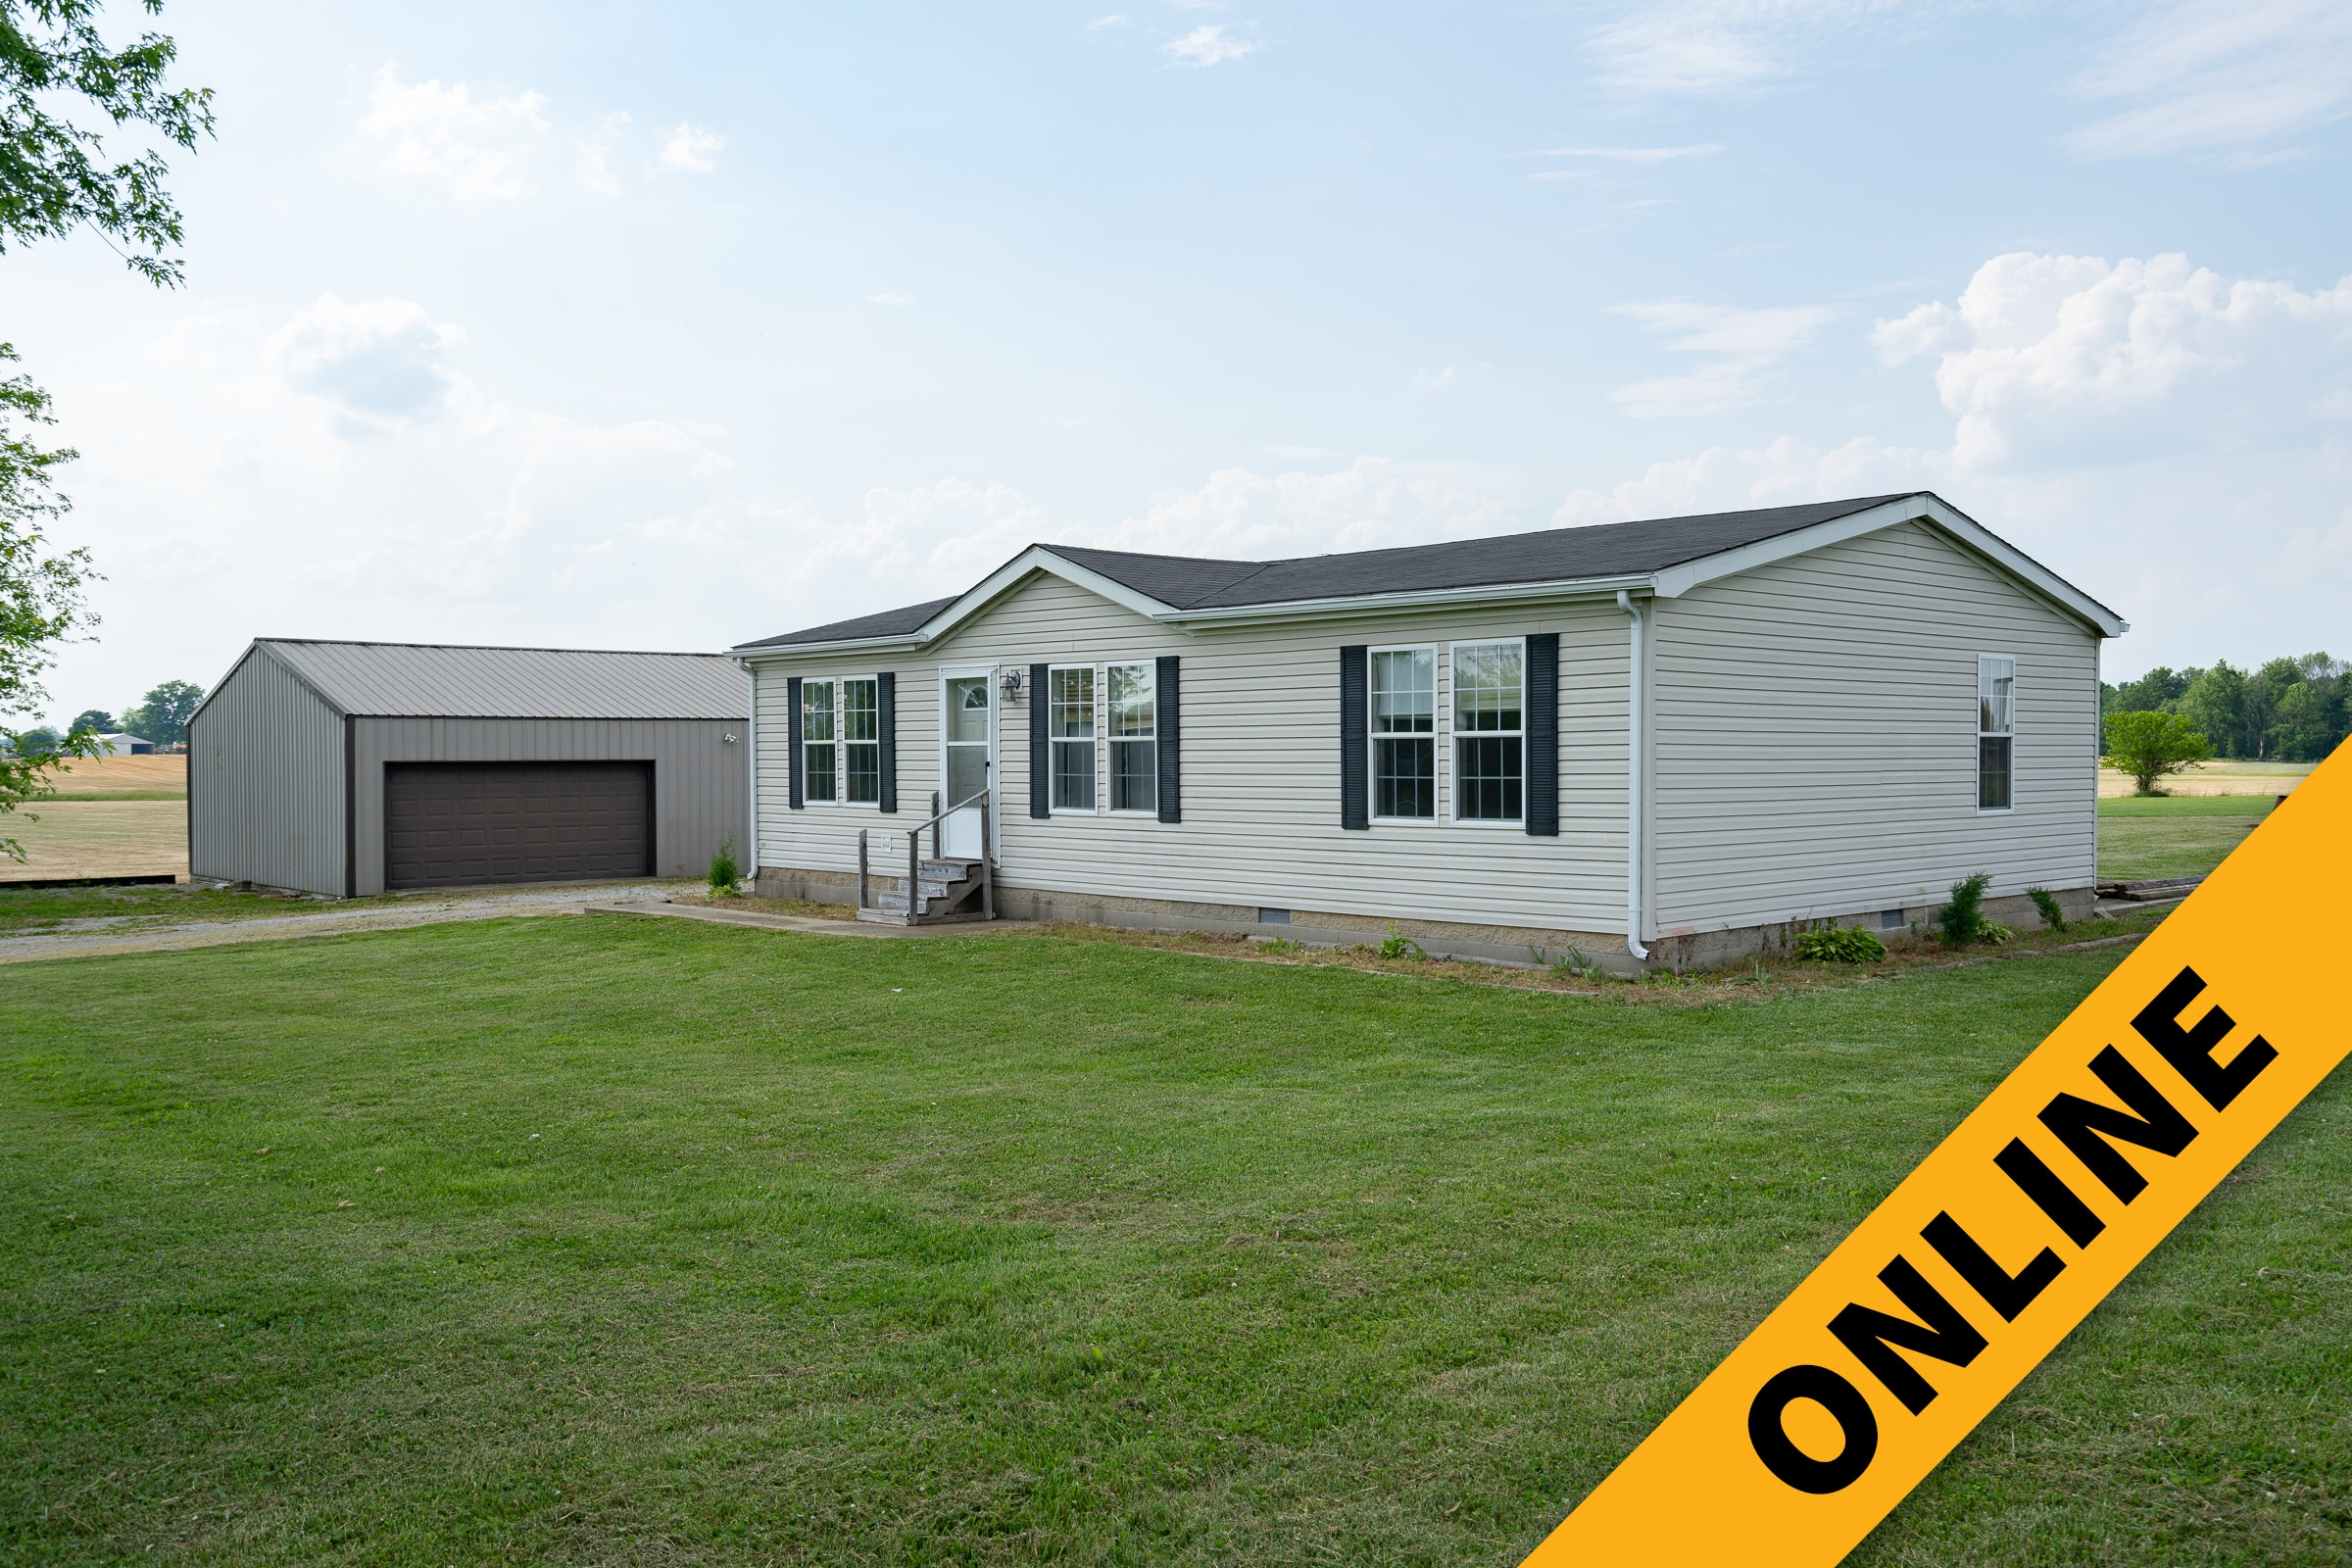 Home & Garage On 1.3 Acres Online Auction